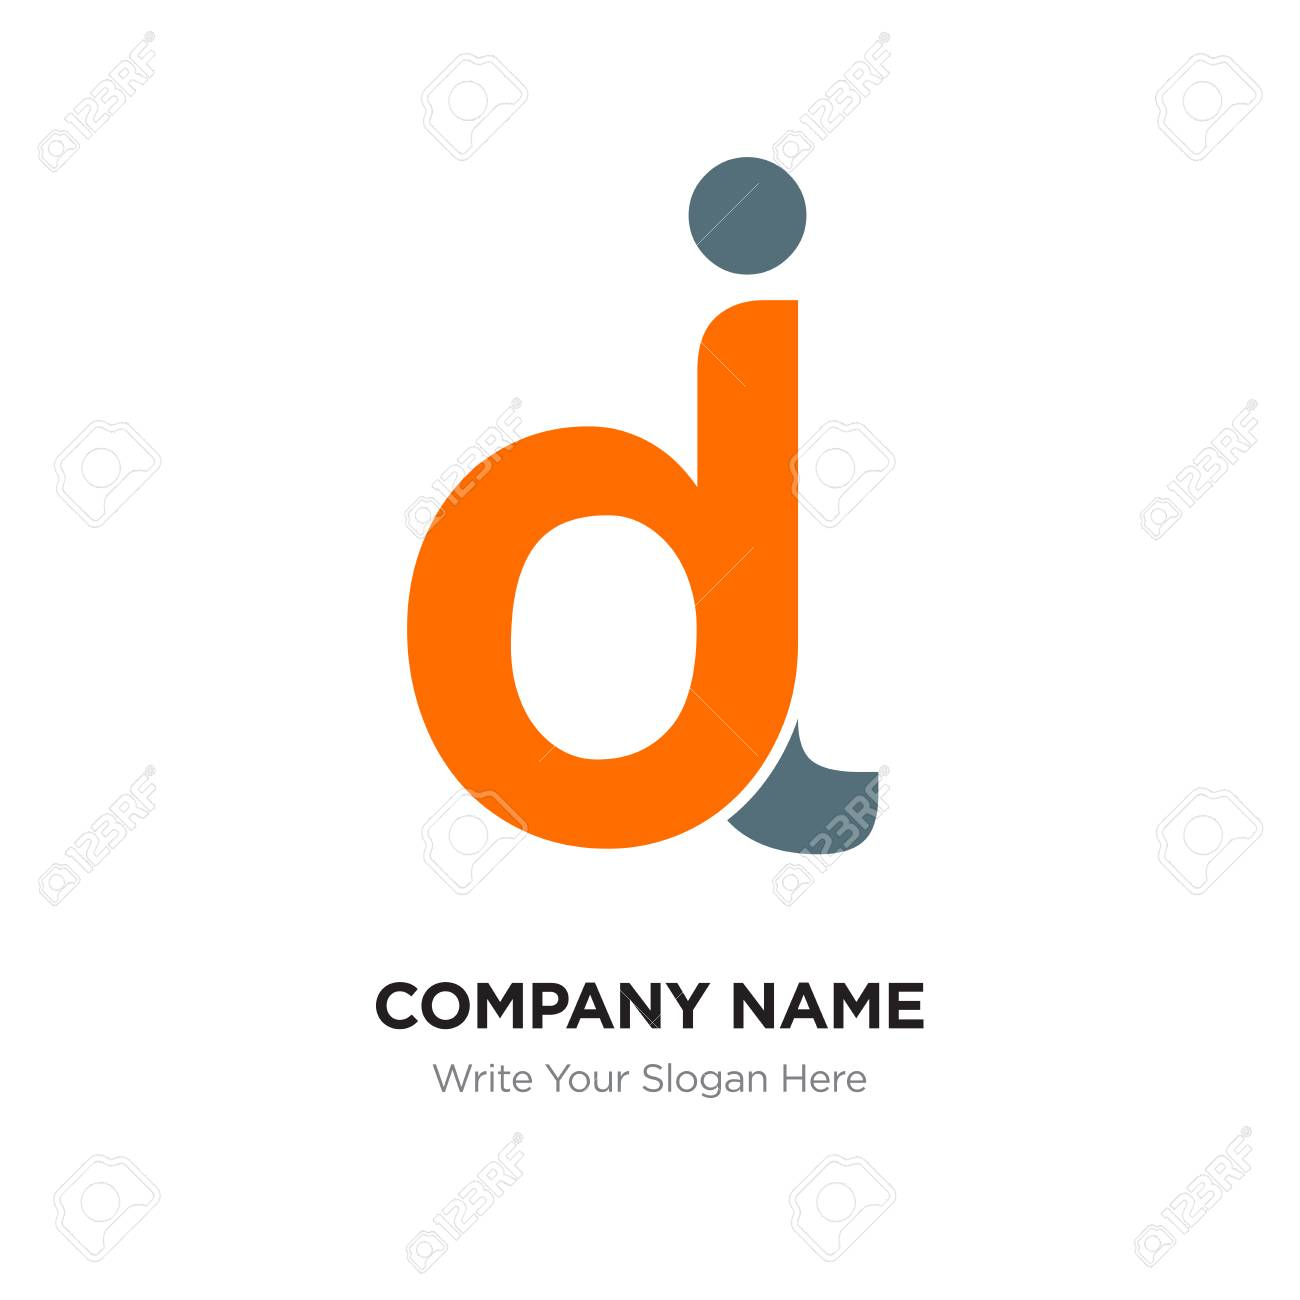 abstract letter dj jd logo design template black orange alphabet royalty free cliparts vectors and stock illustration image 96374664 abstract letter dj jd logo design template black orange alphabet